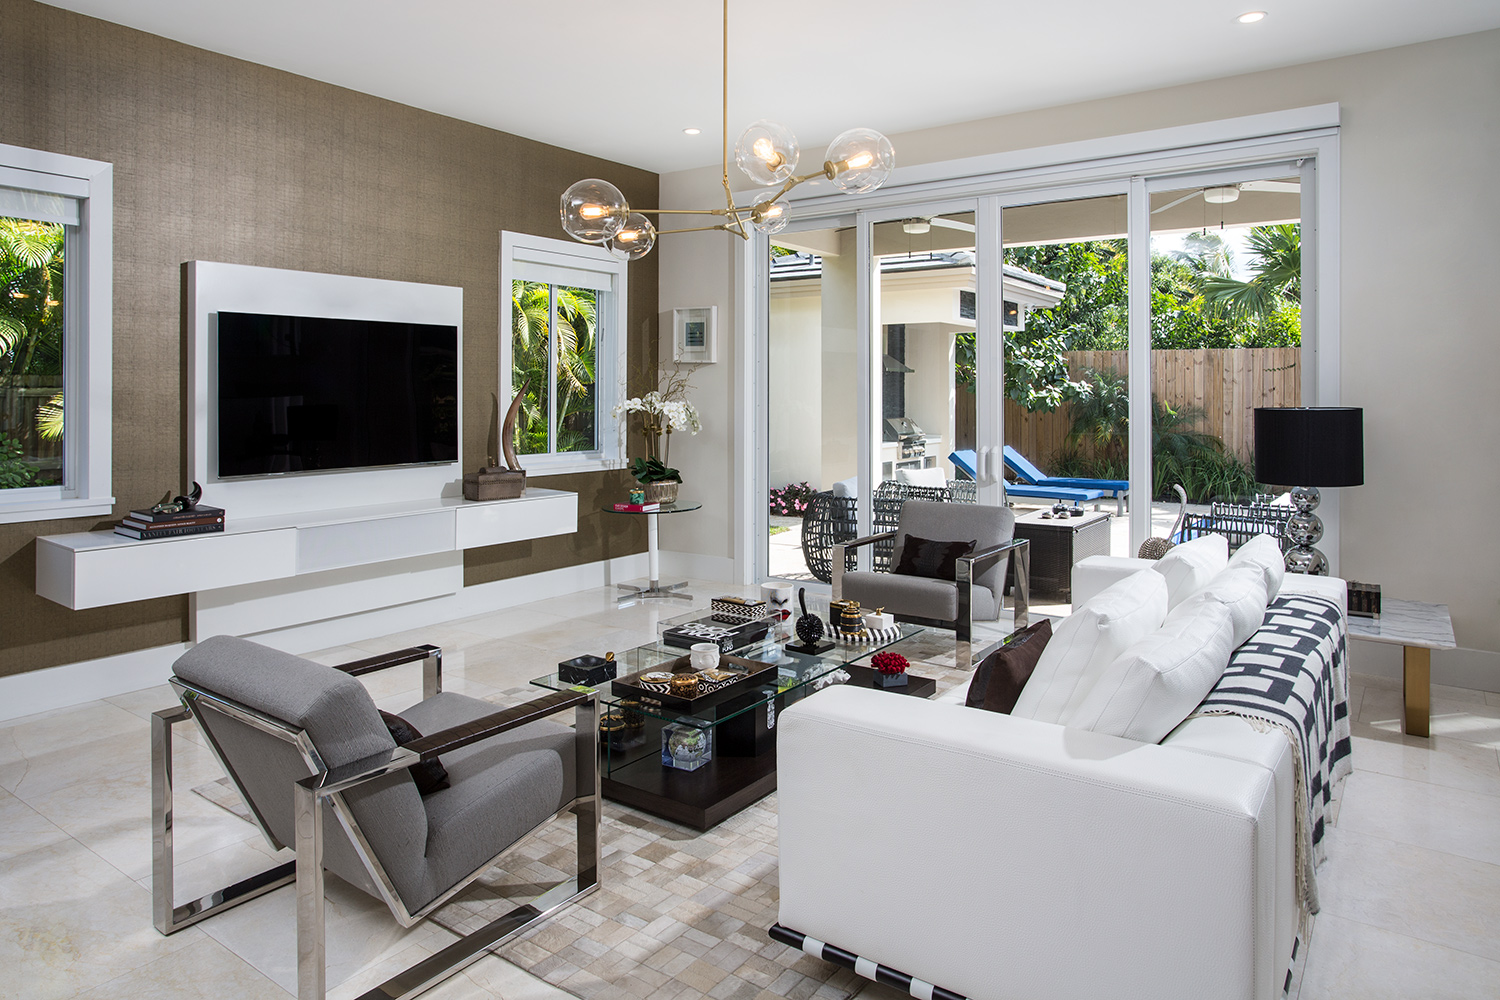 Braganza Ave, Coral Gables - Interior Design, Decoration and Design Development